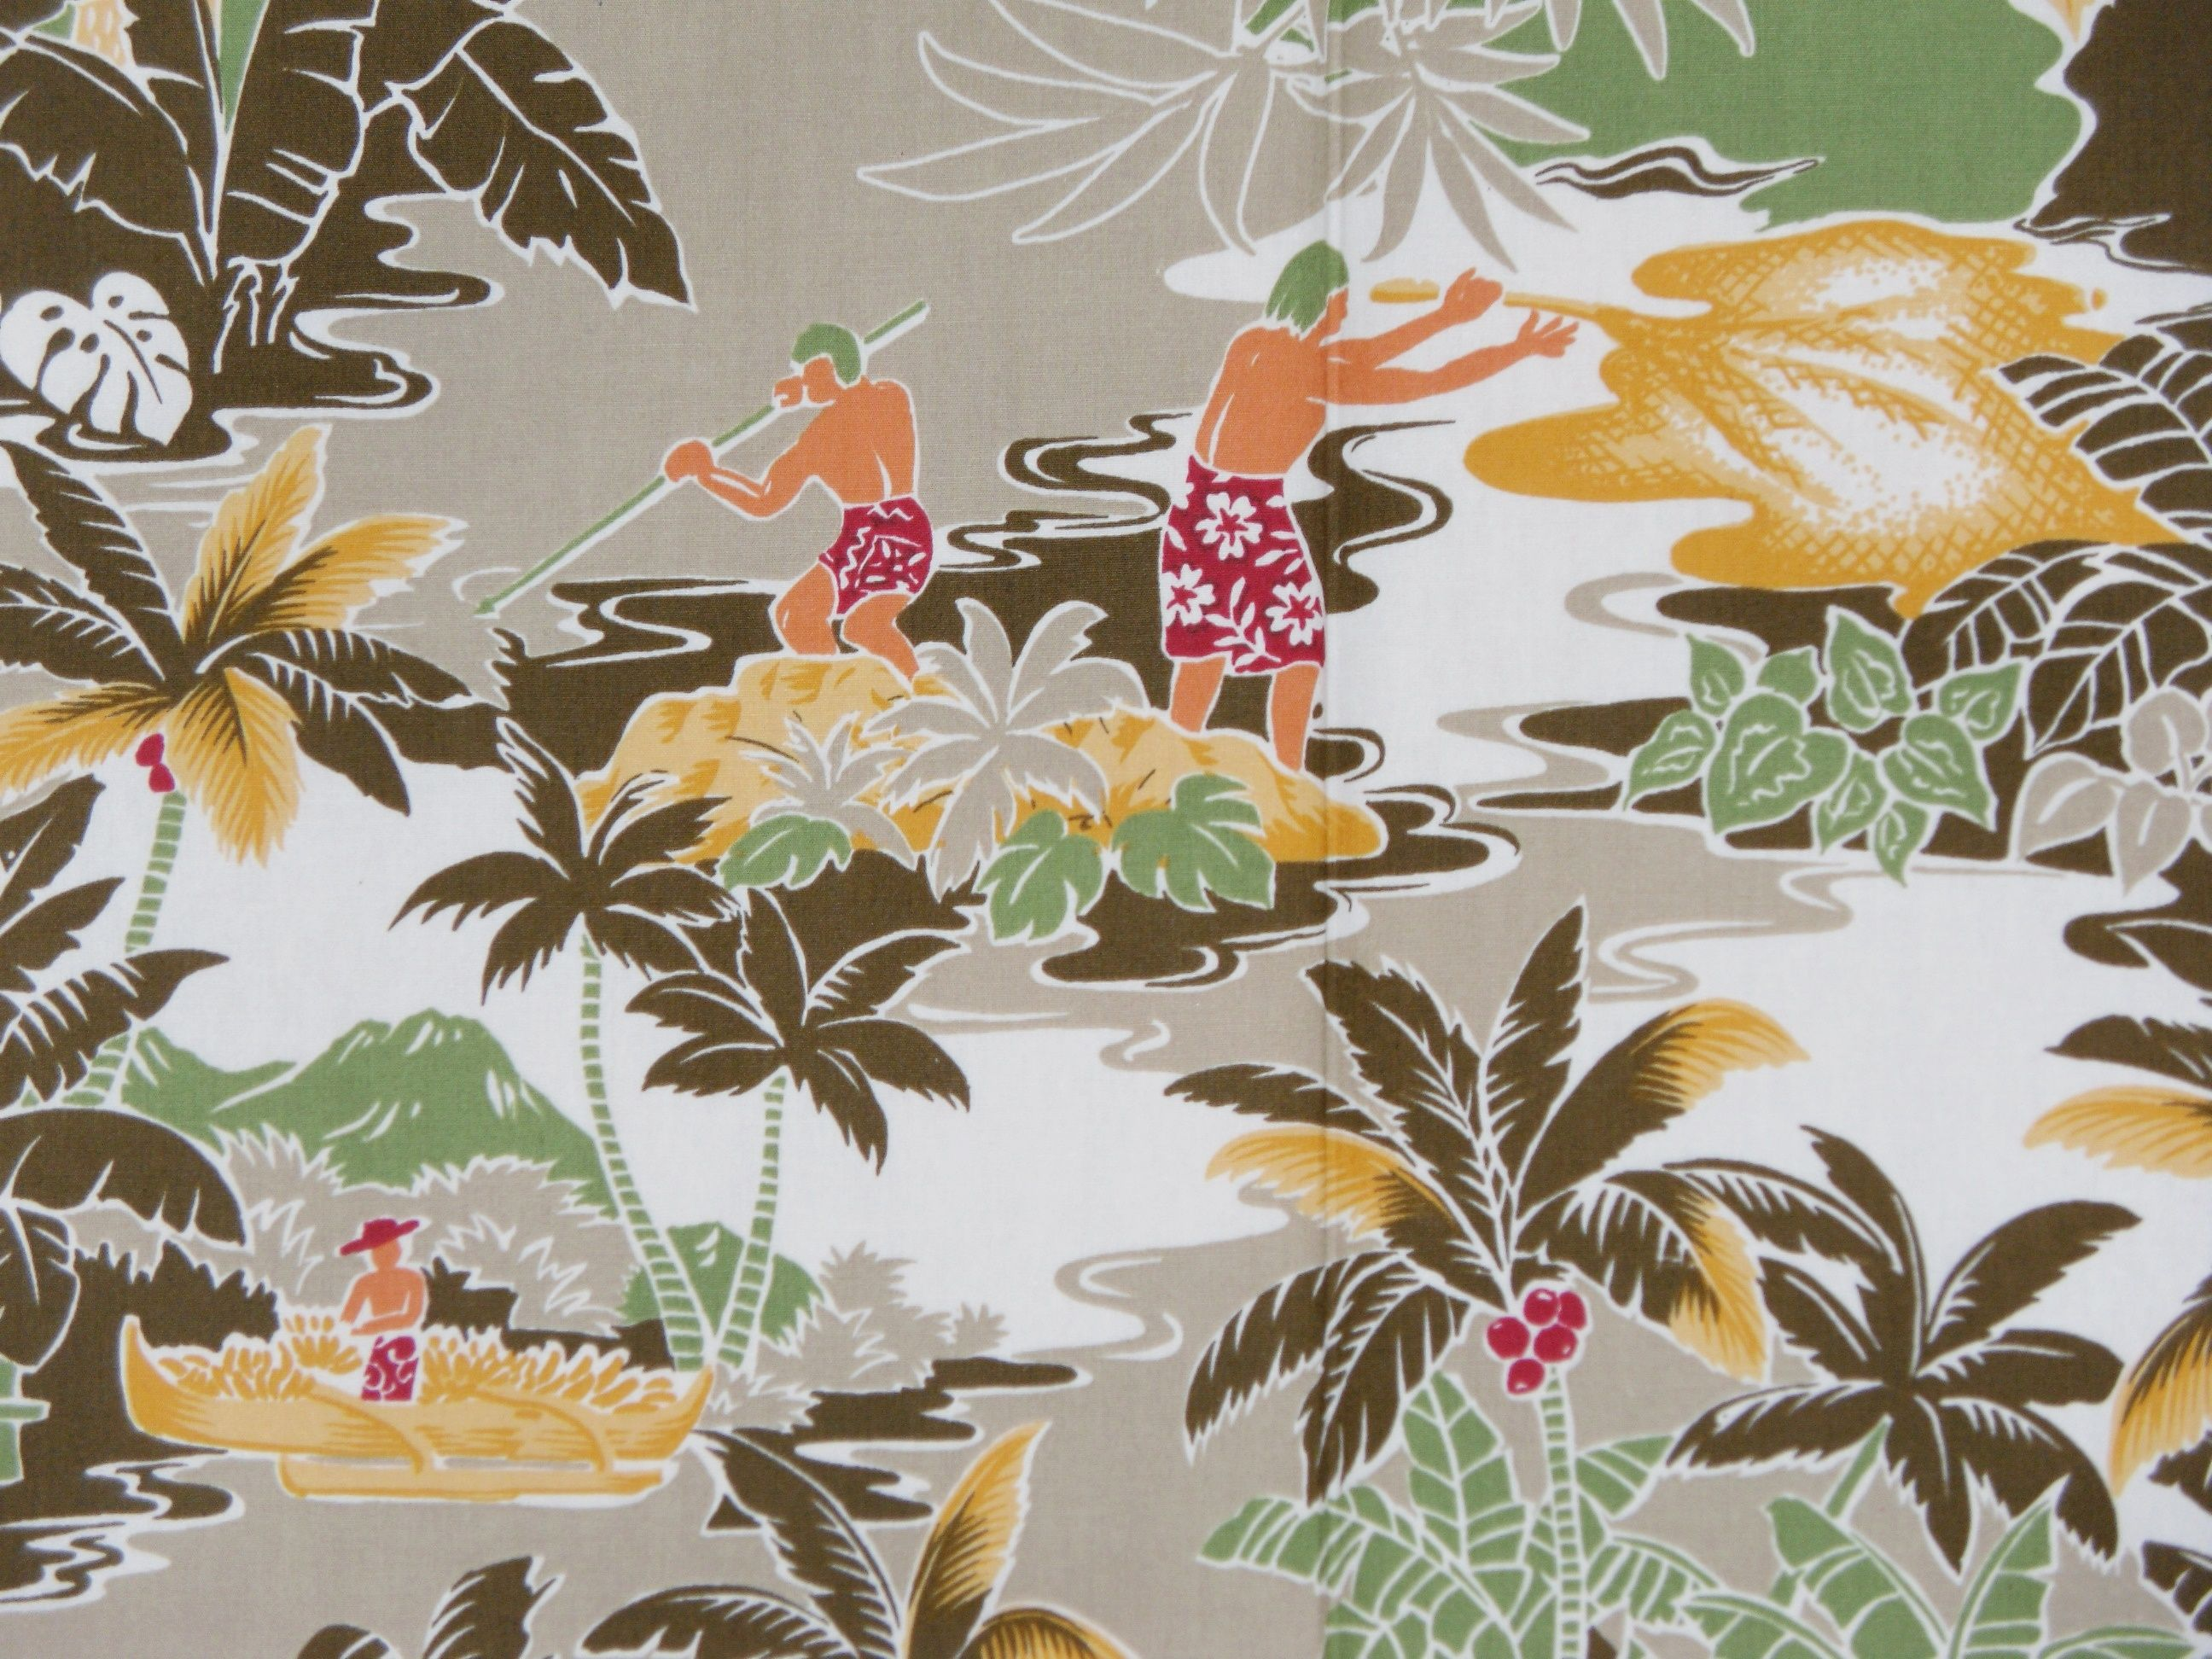 Classic island themed Hawaiian fabric for the 'must have